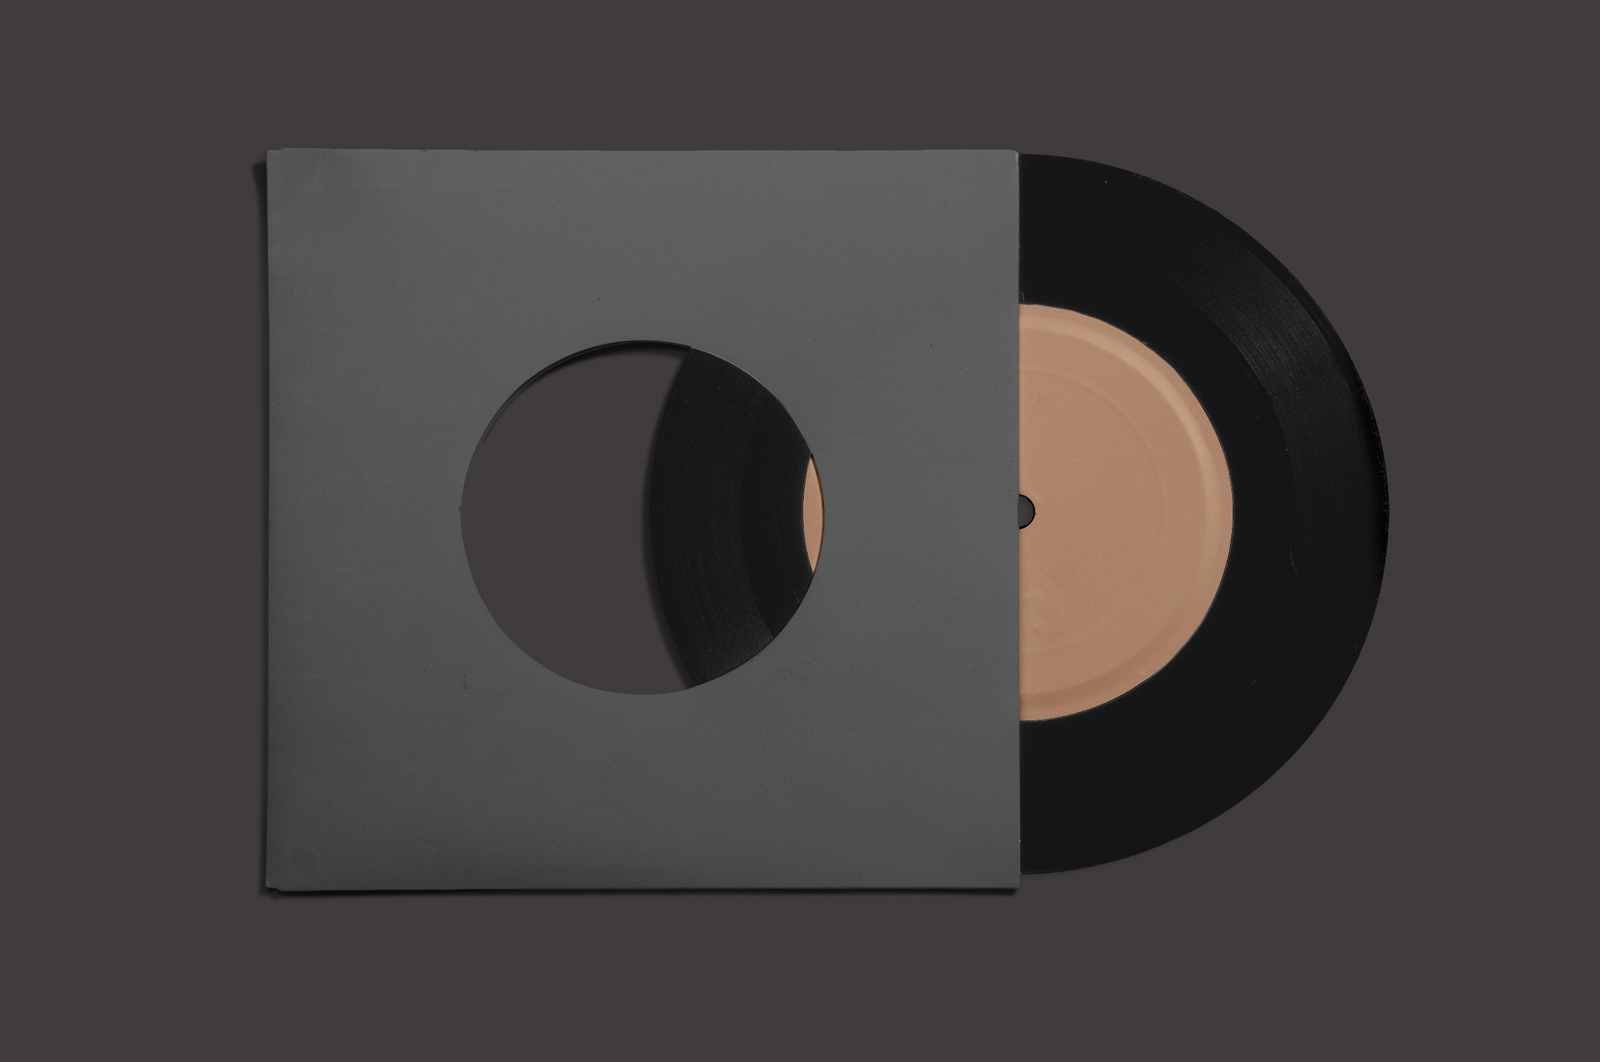 The vinyl record mockup templates get an upgrade go media the vinyl record mockup templates get an upgrade go media creativity at work maxwellsz